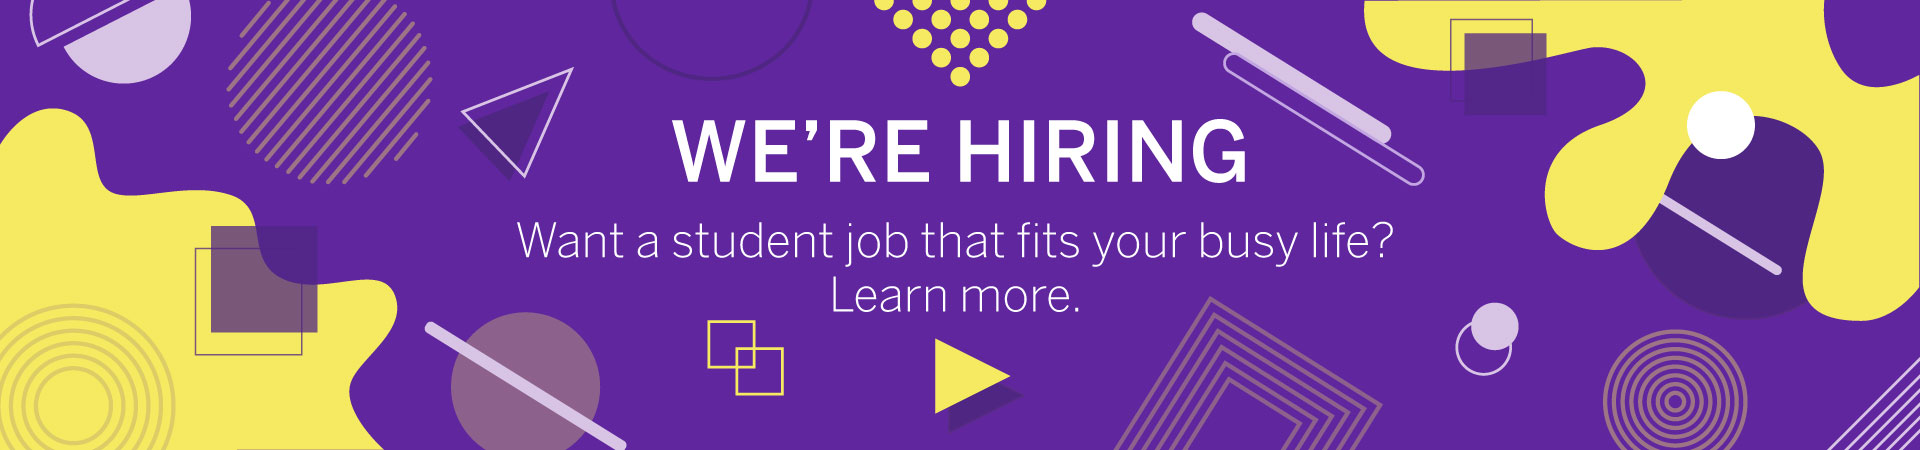 We're hiring.  Want a student job that fits your busy life? Learn more.